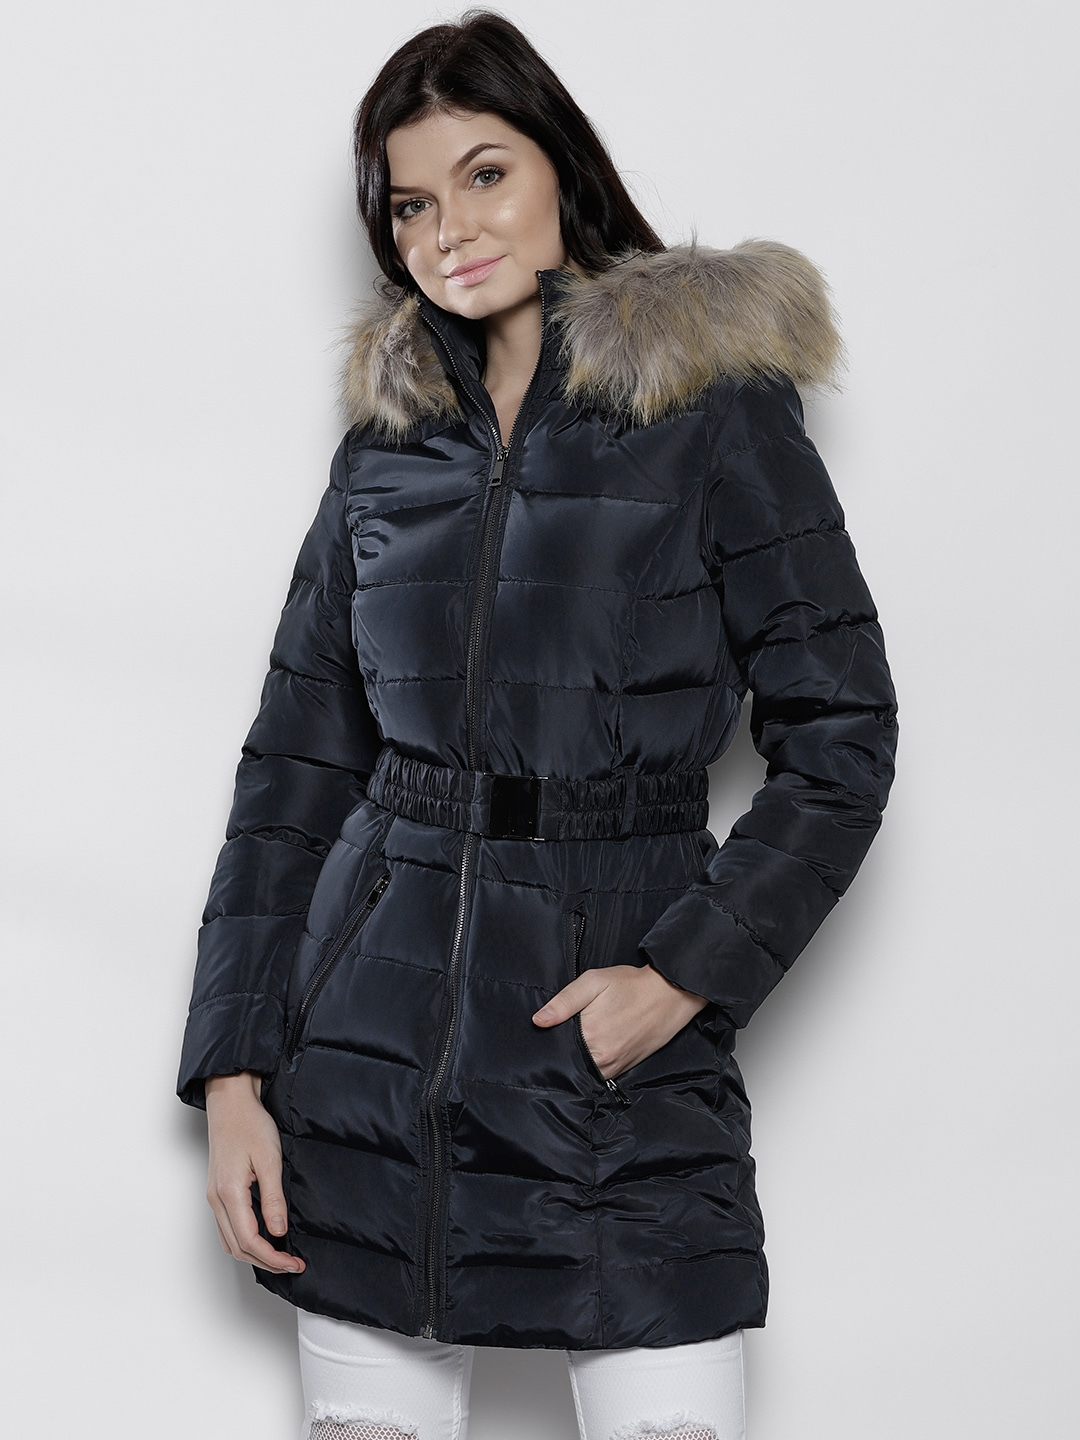 18b15bcb99d1 Buy DOROTHY PERKINS Women Navy Blue Solid Longline Parka Jacket ...